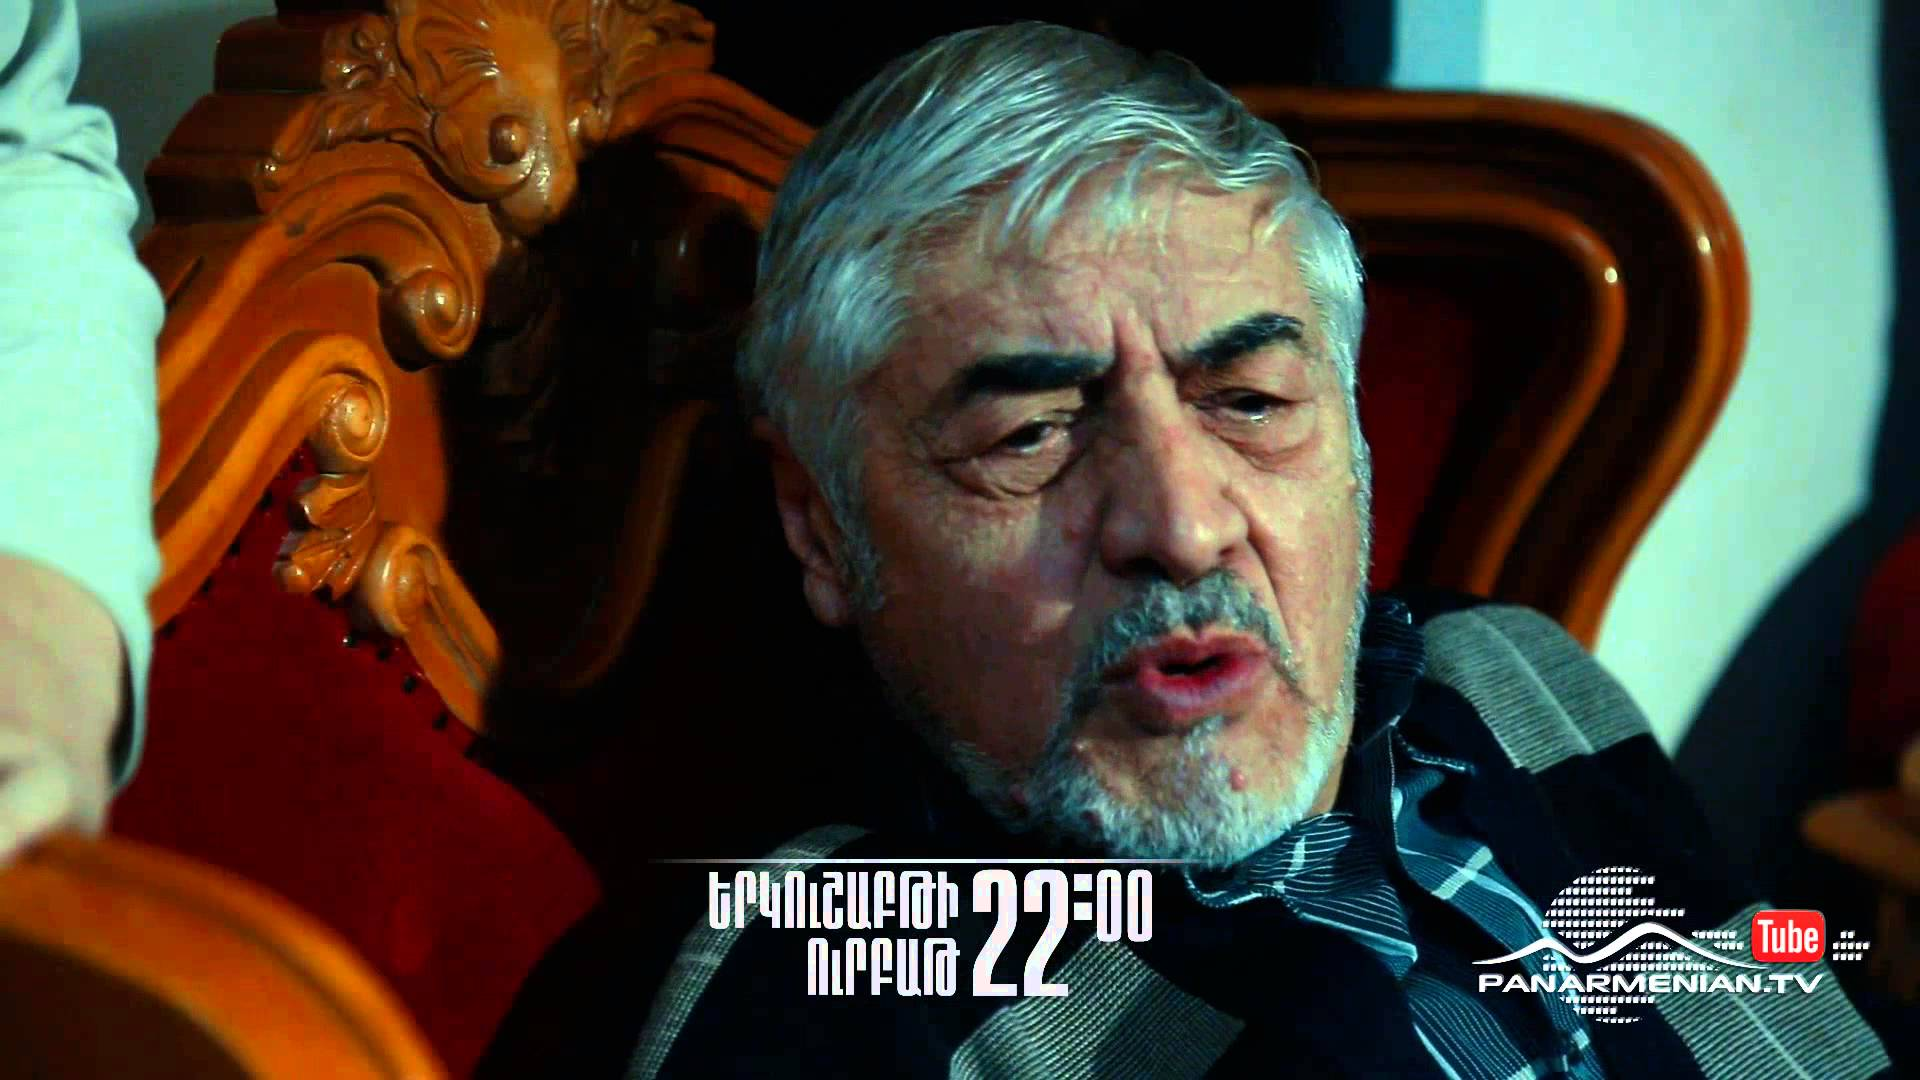 Verjin-Hayrike-episode-12-The-Last-Father-Верджин-Айрик